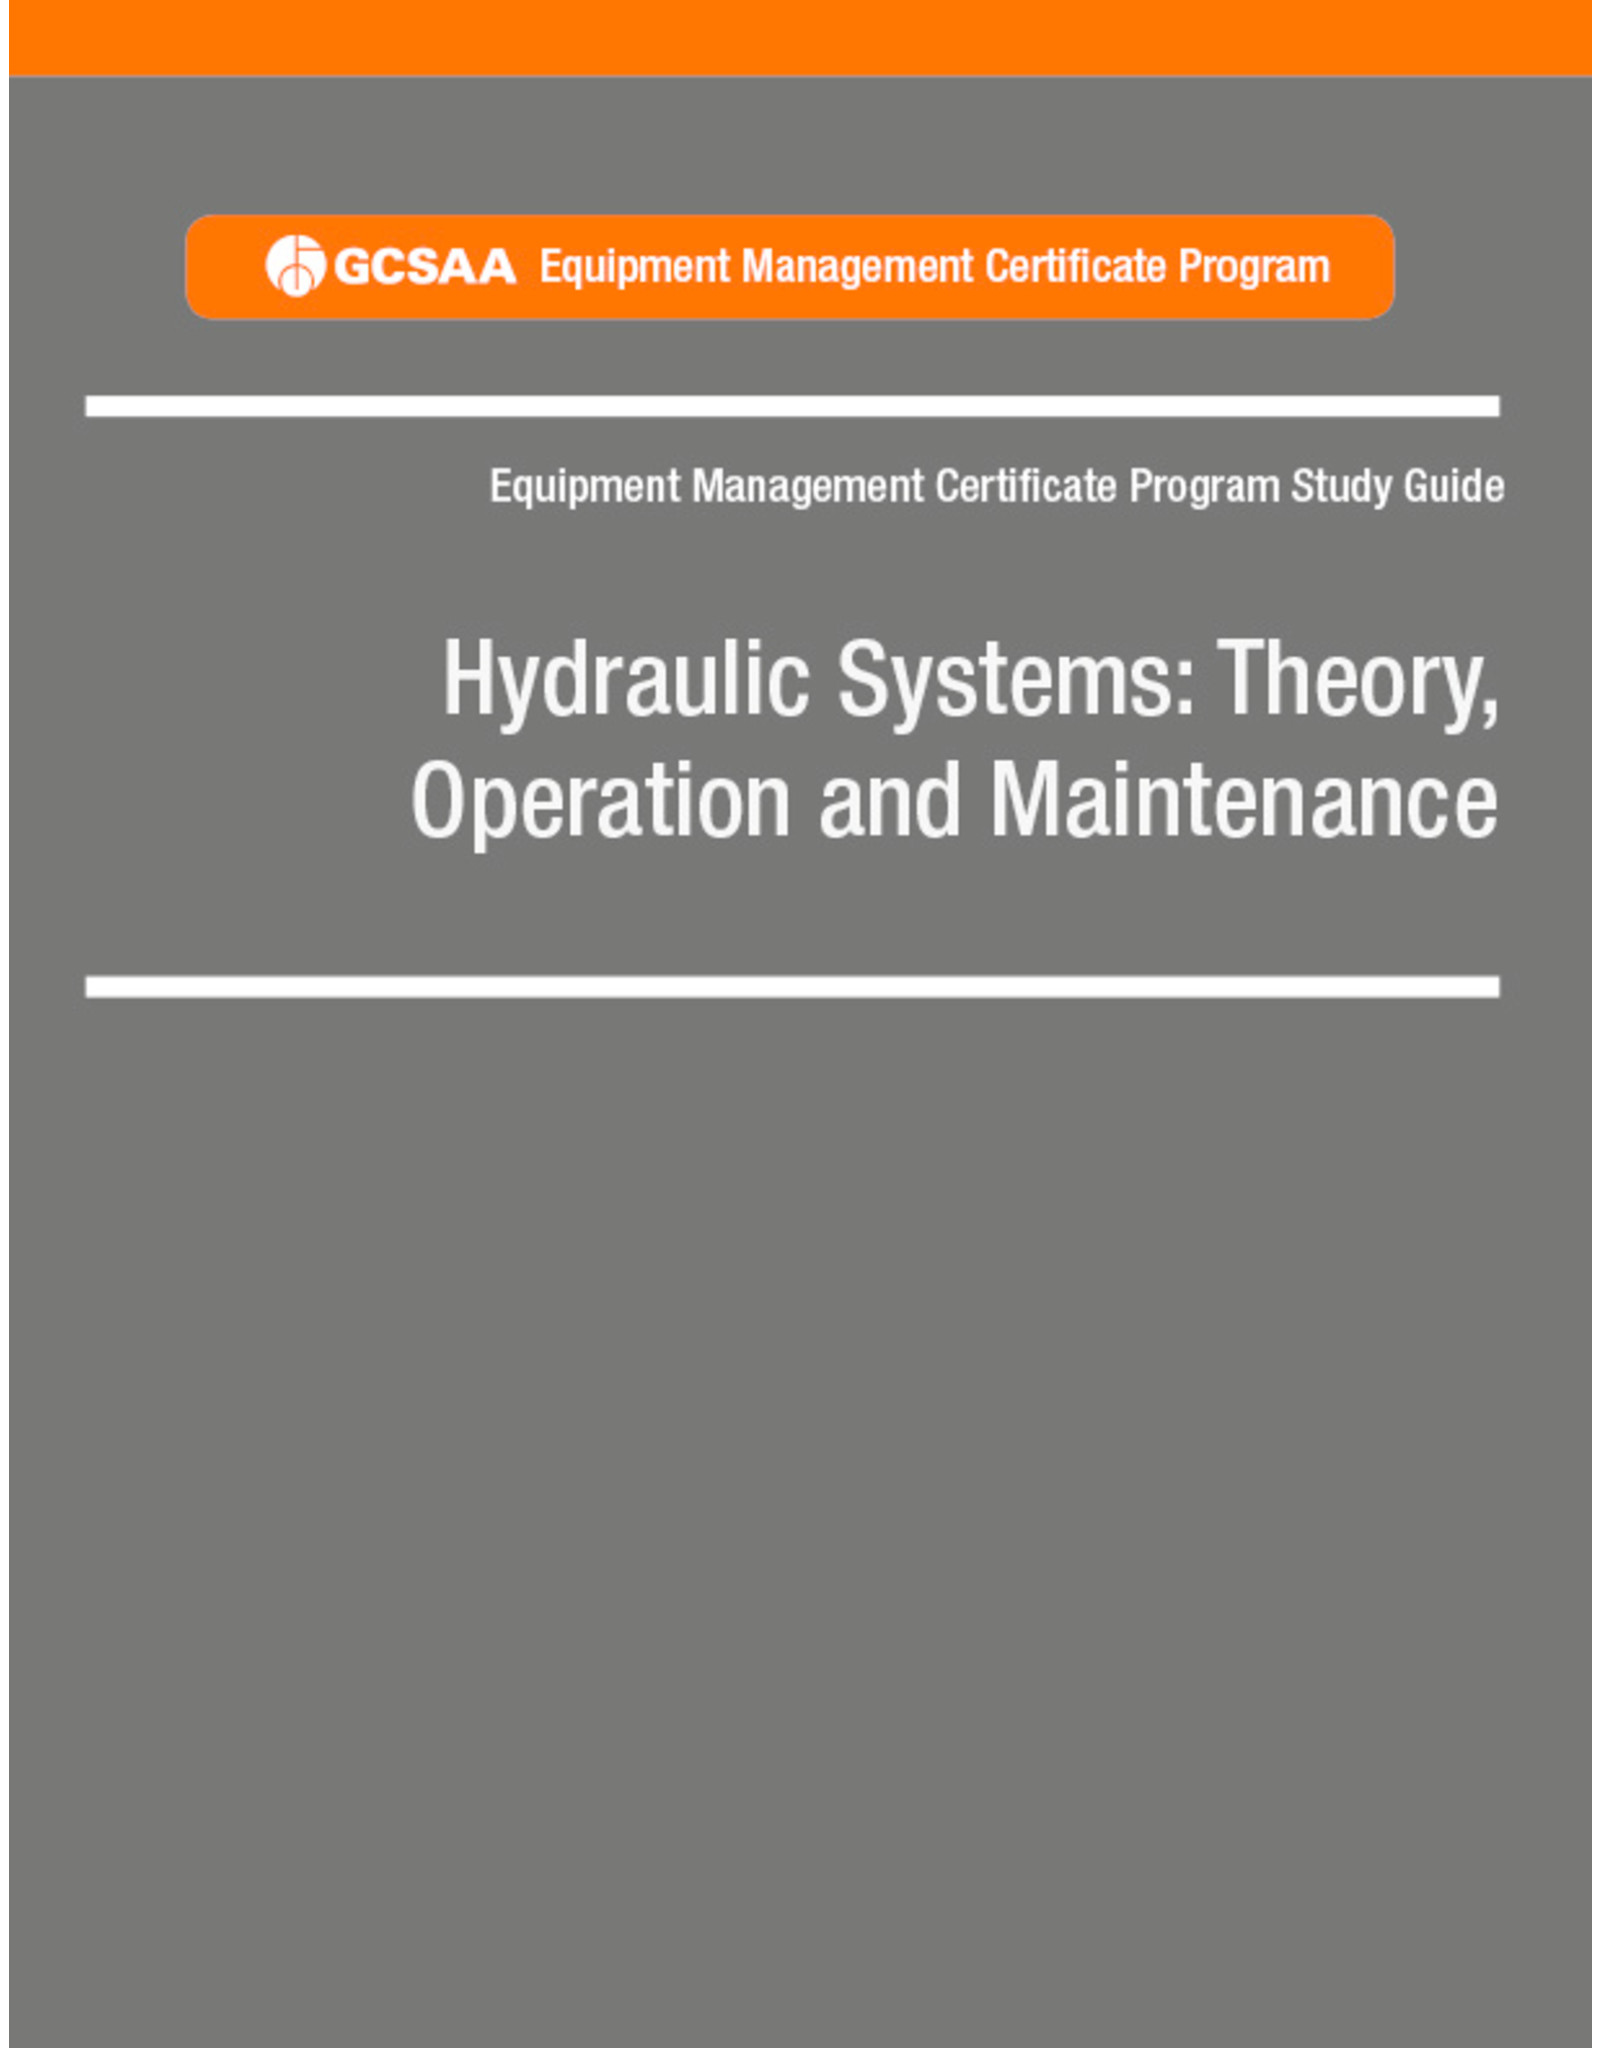 Hydraulic Systems: Theory, Operation and Maintenance